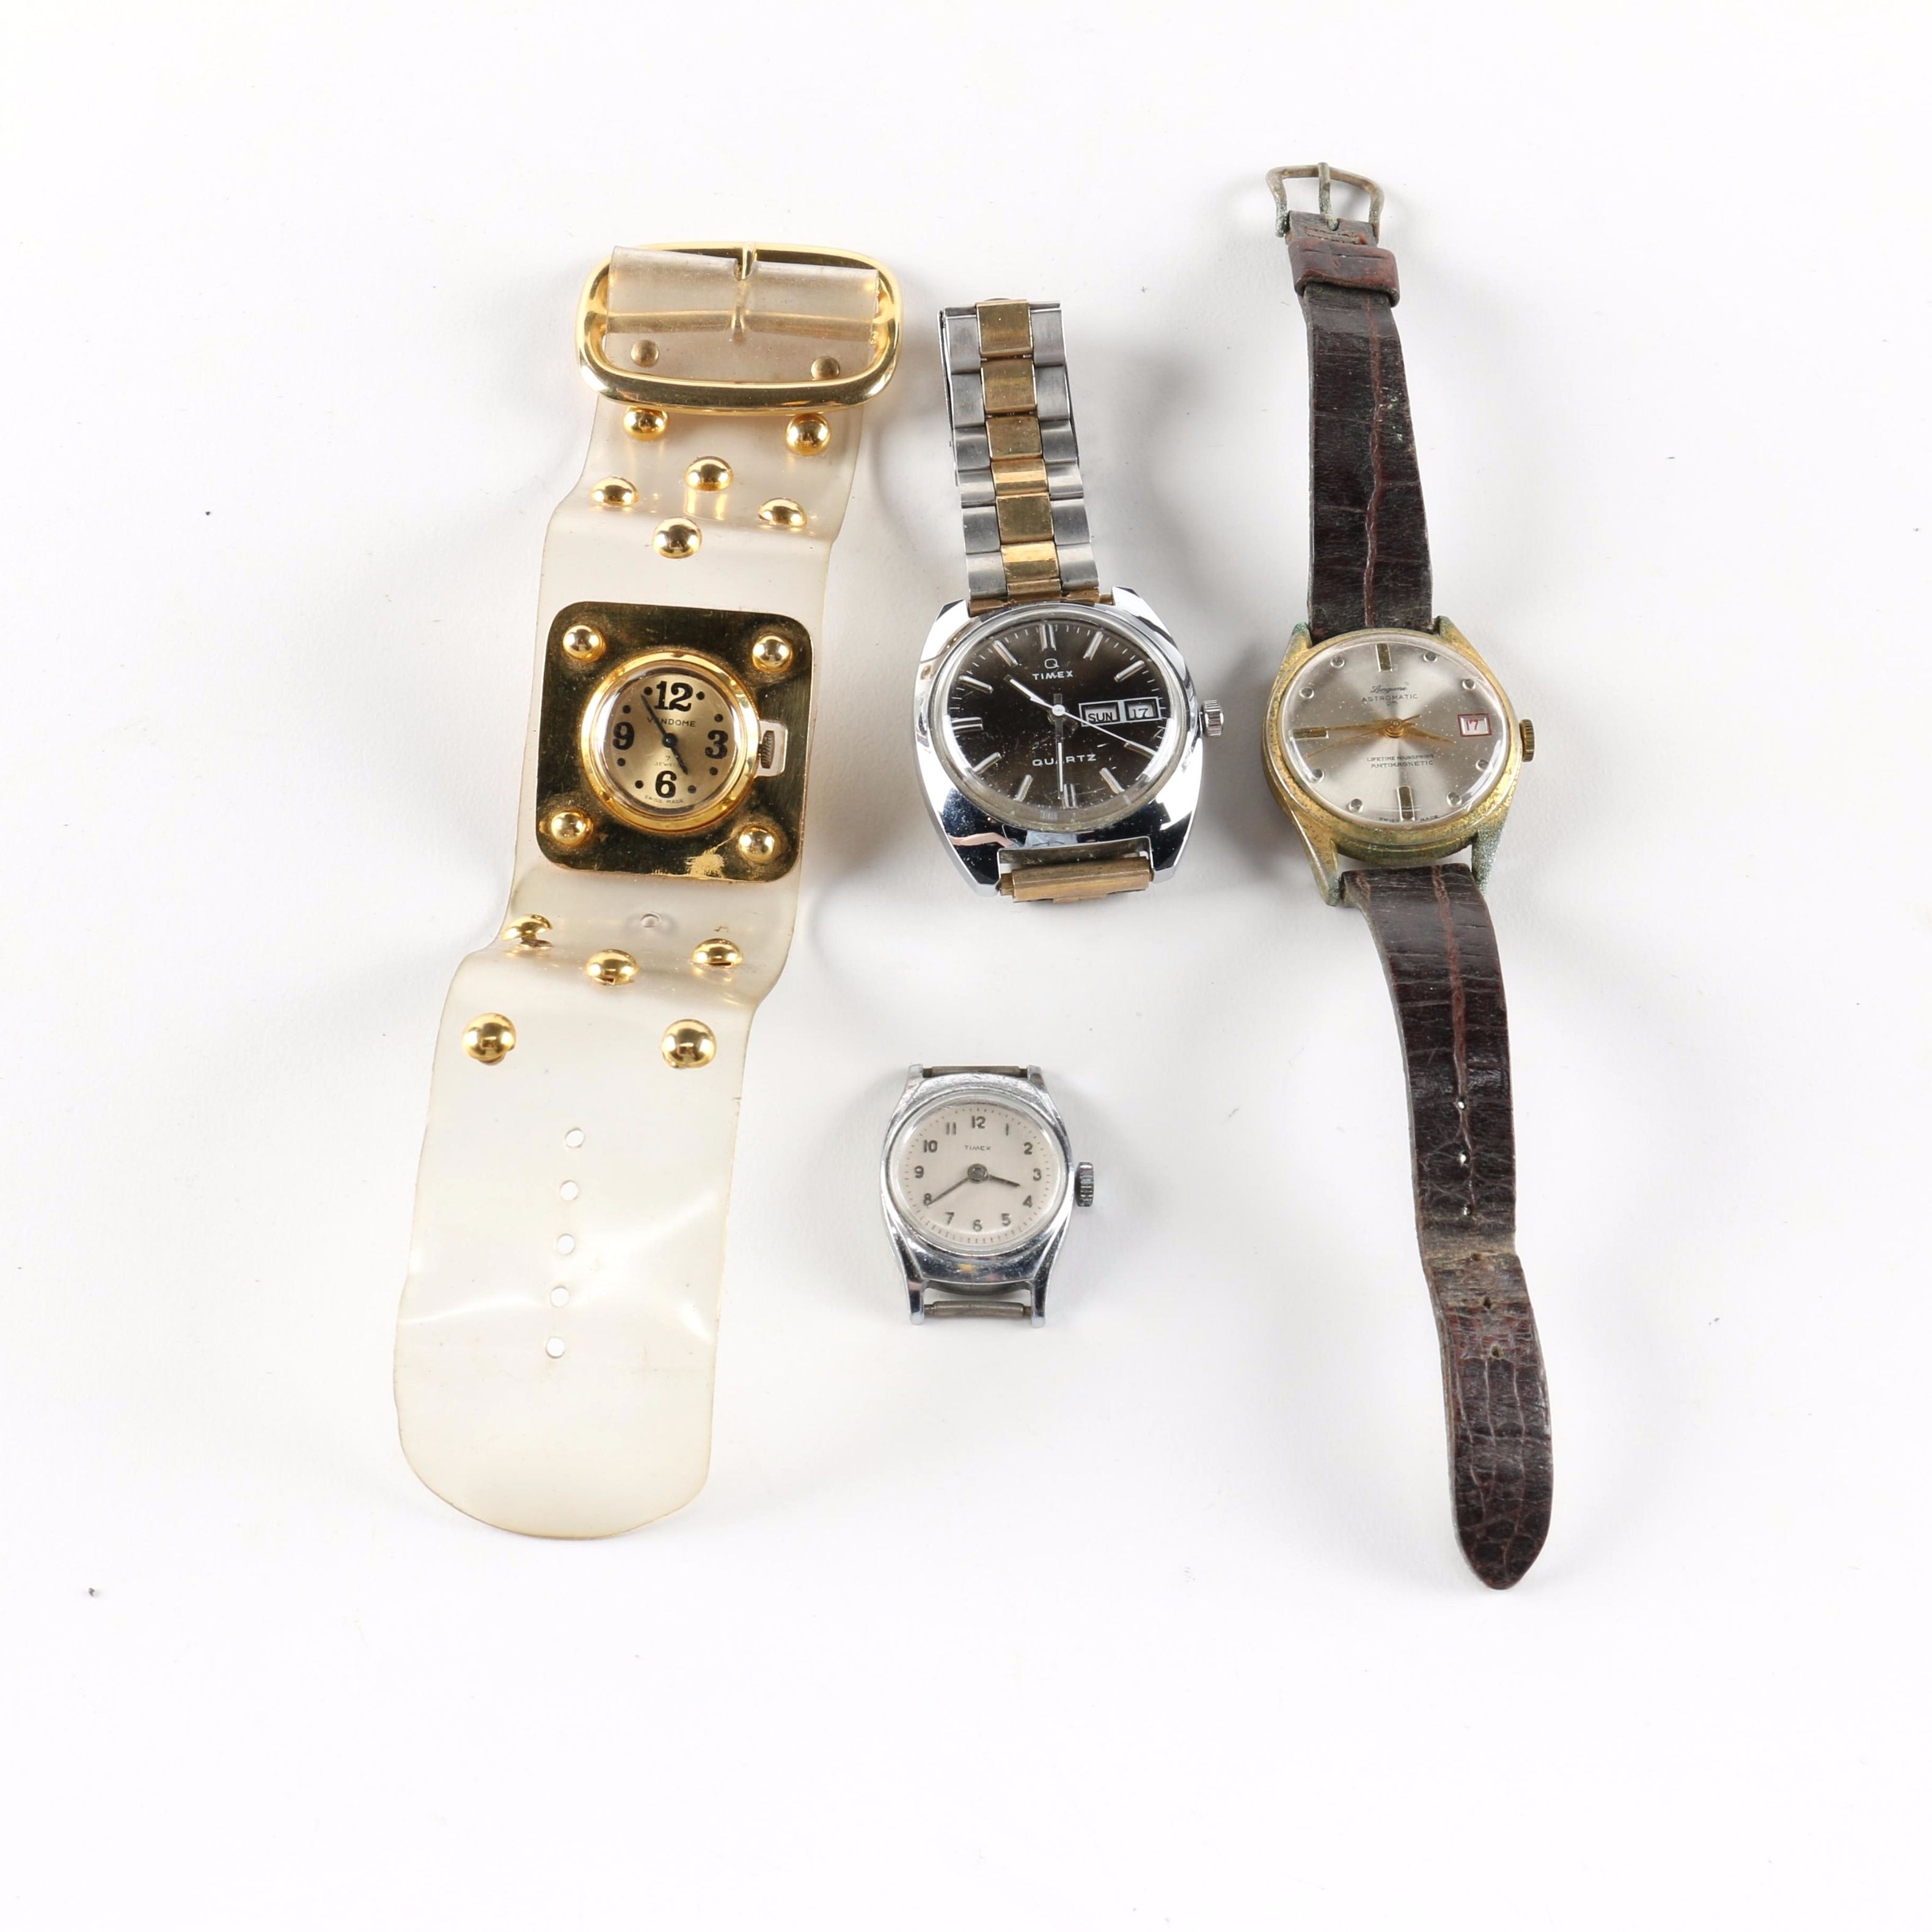 Wristwatches Including Timex and Vendome